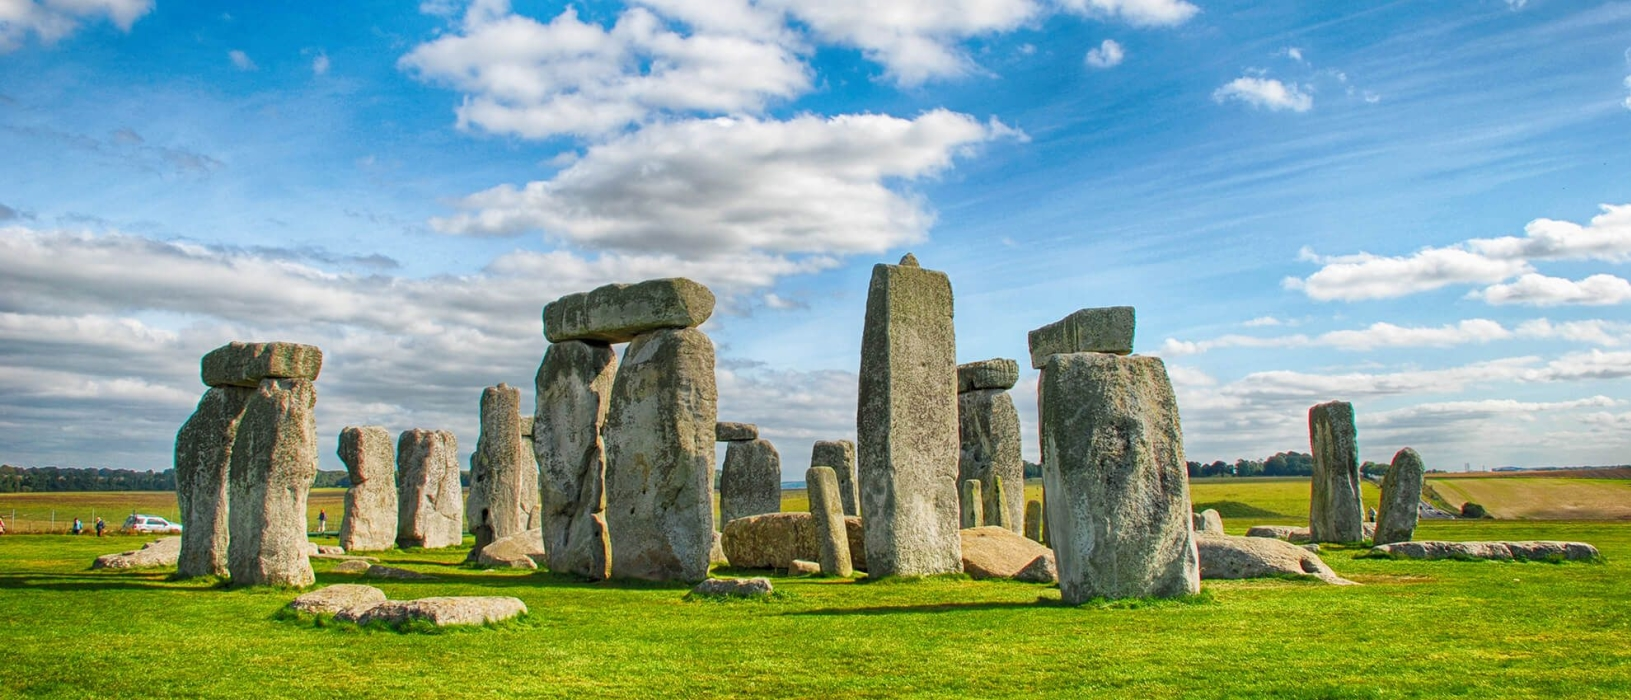 See Stonehenge for yourself (6/6) - scroll down for some more information